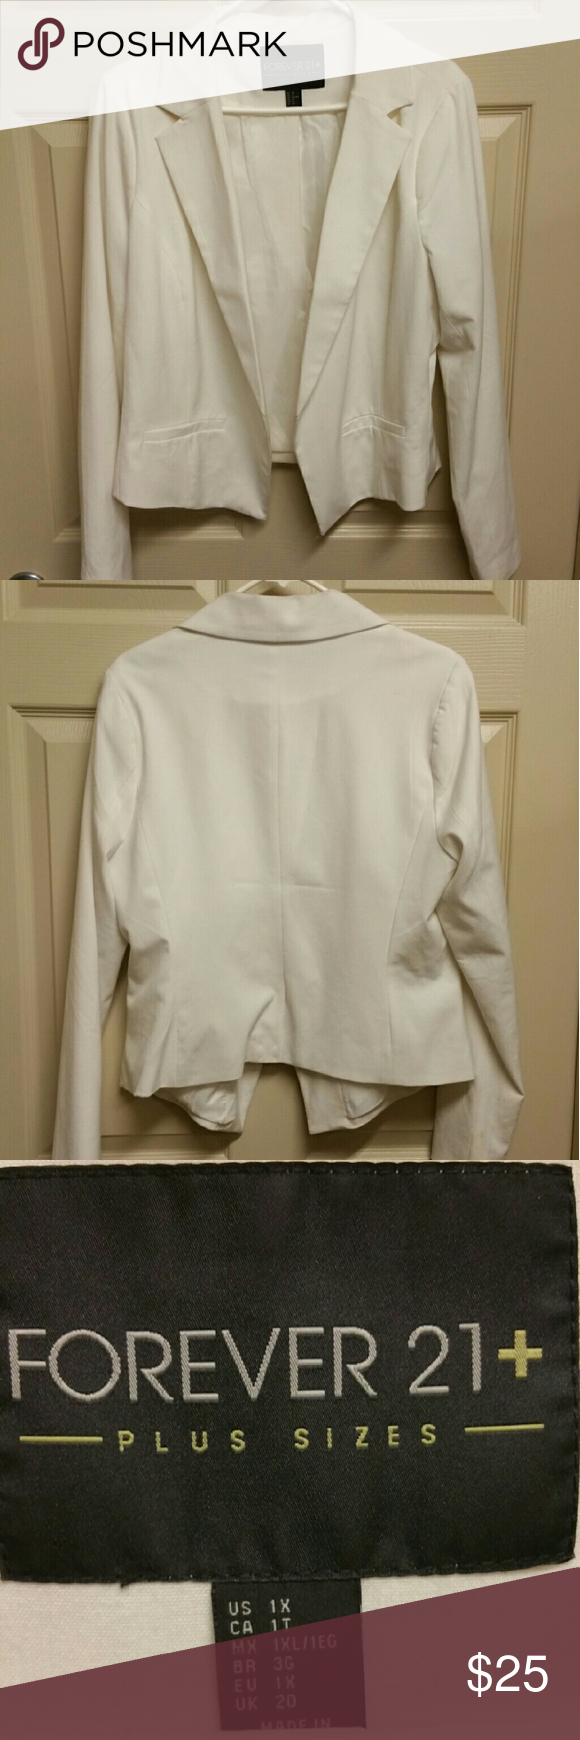 Forever 21 Cream Blazer Great layering piece. Great quality. Business or night wear! Forever 21 Jackets & Coats Blazers